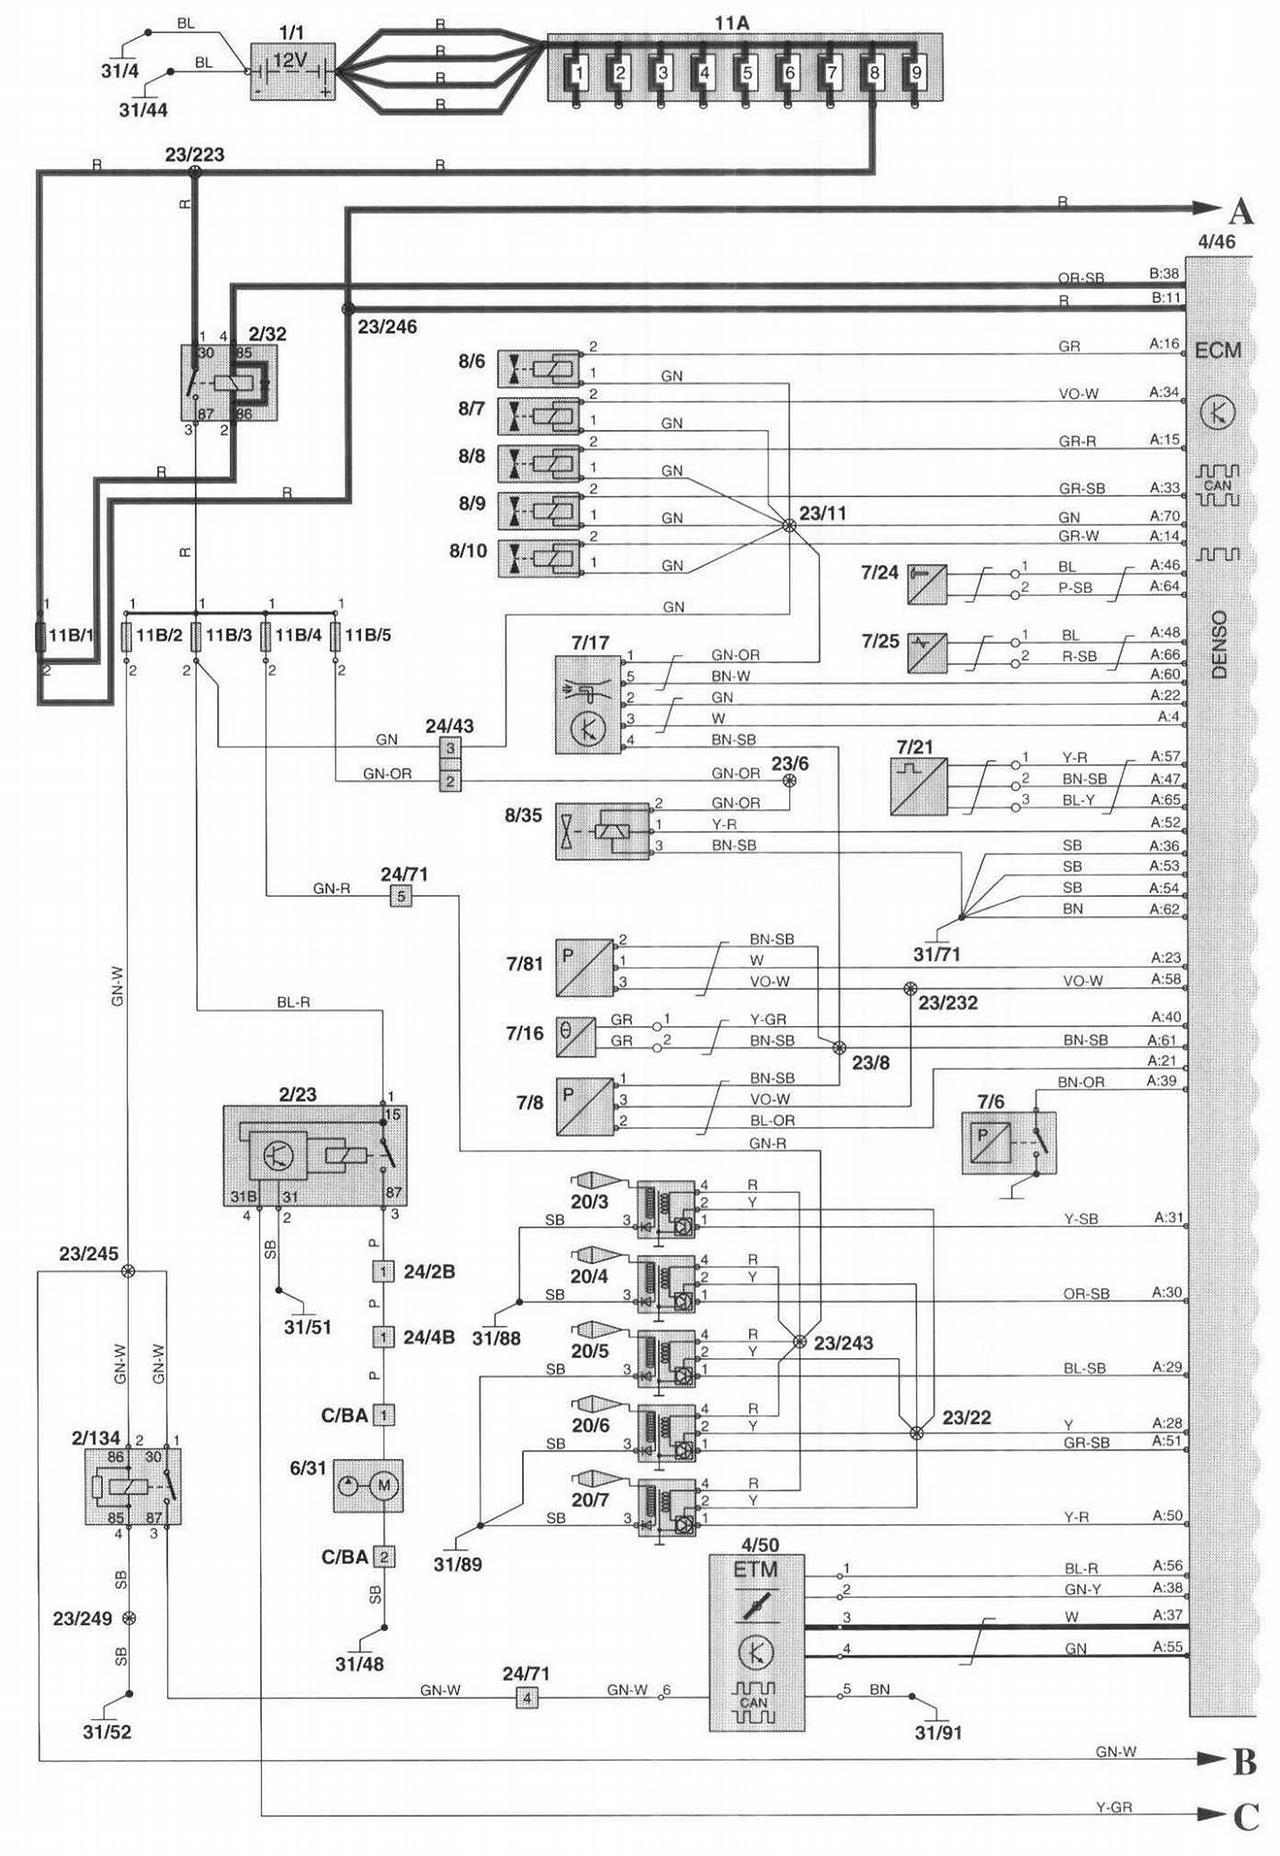 [DIAGRAM_0HG]  ZM_6162] Volvo Xc90 Wiring Diagram Volvo Free Engine Image For User Manual  Download Diagram | Volvo Wiring Diagram Xc90 |  | Antus Dome Mohammedshrine Librar Wiring 101